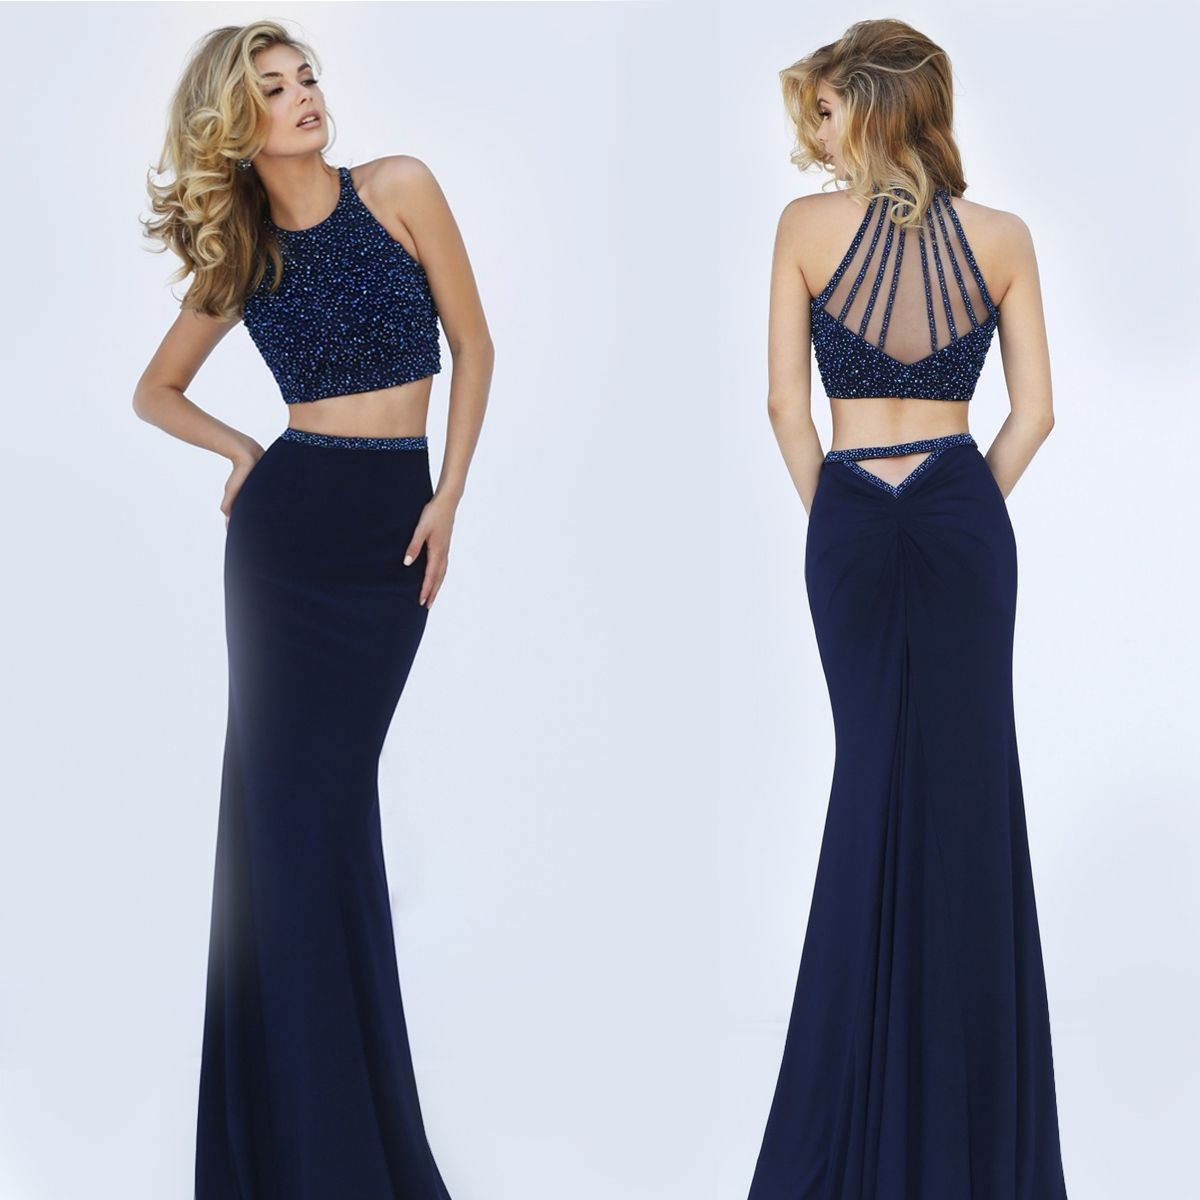 Navy Blue Two Piece Beaded Illusion Top Dress by Sherri Hill | Prom ...